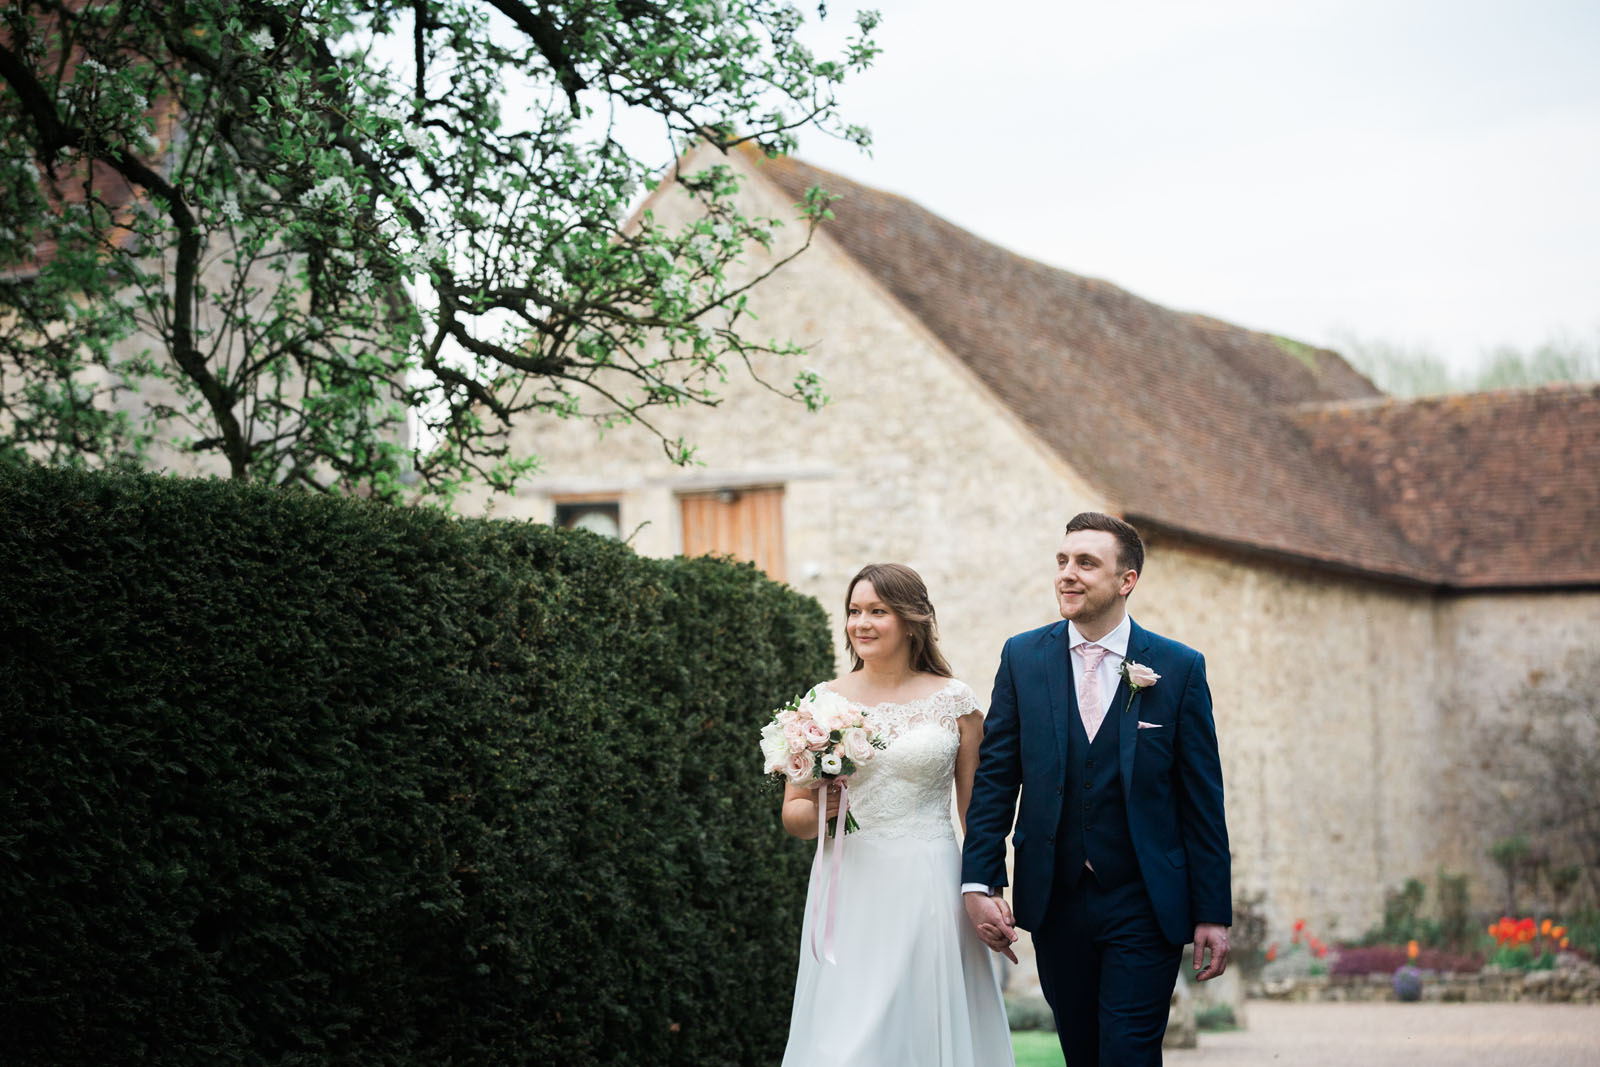 Notley Abbey Weddings - photography by Heni Fourie